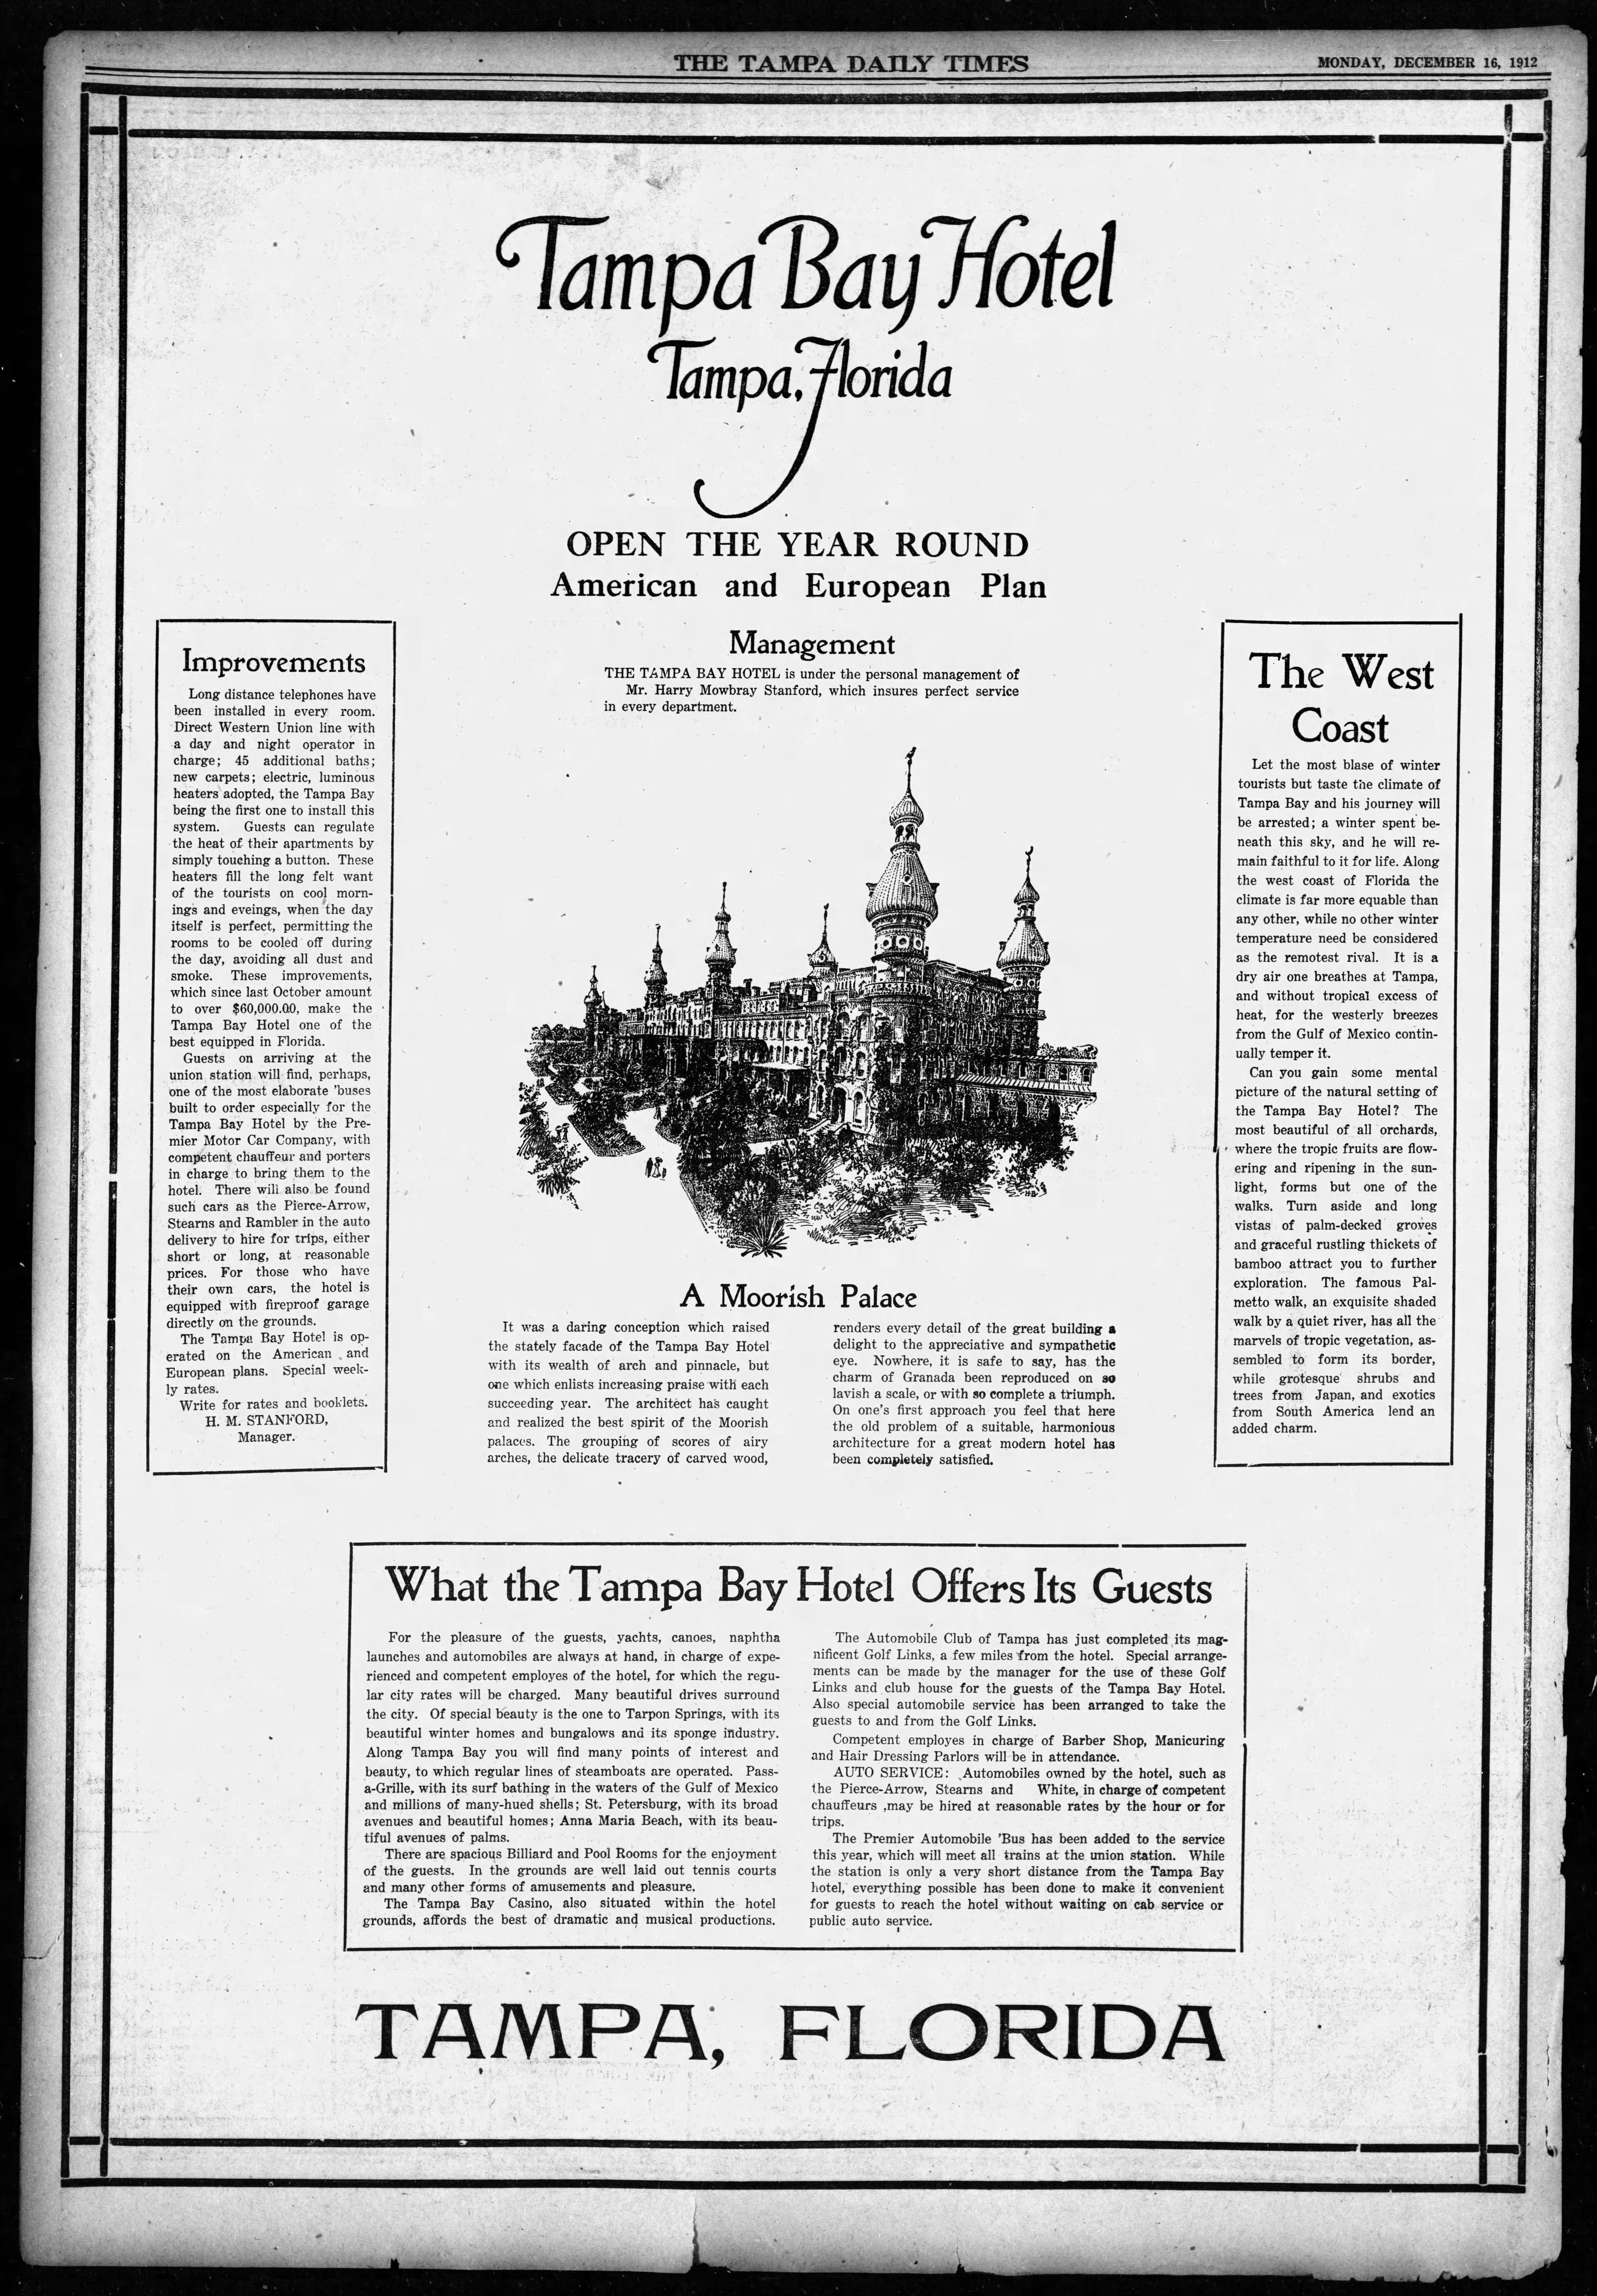 Rocky Point Golf Course Advertised within Tampa Bay Hotel Advertisement - Dec 16, 1912 Tampa Times